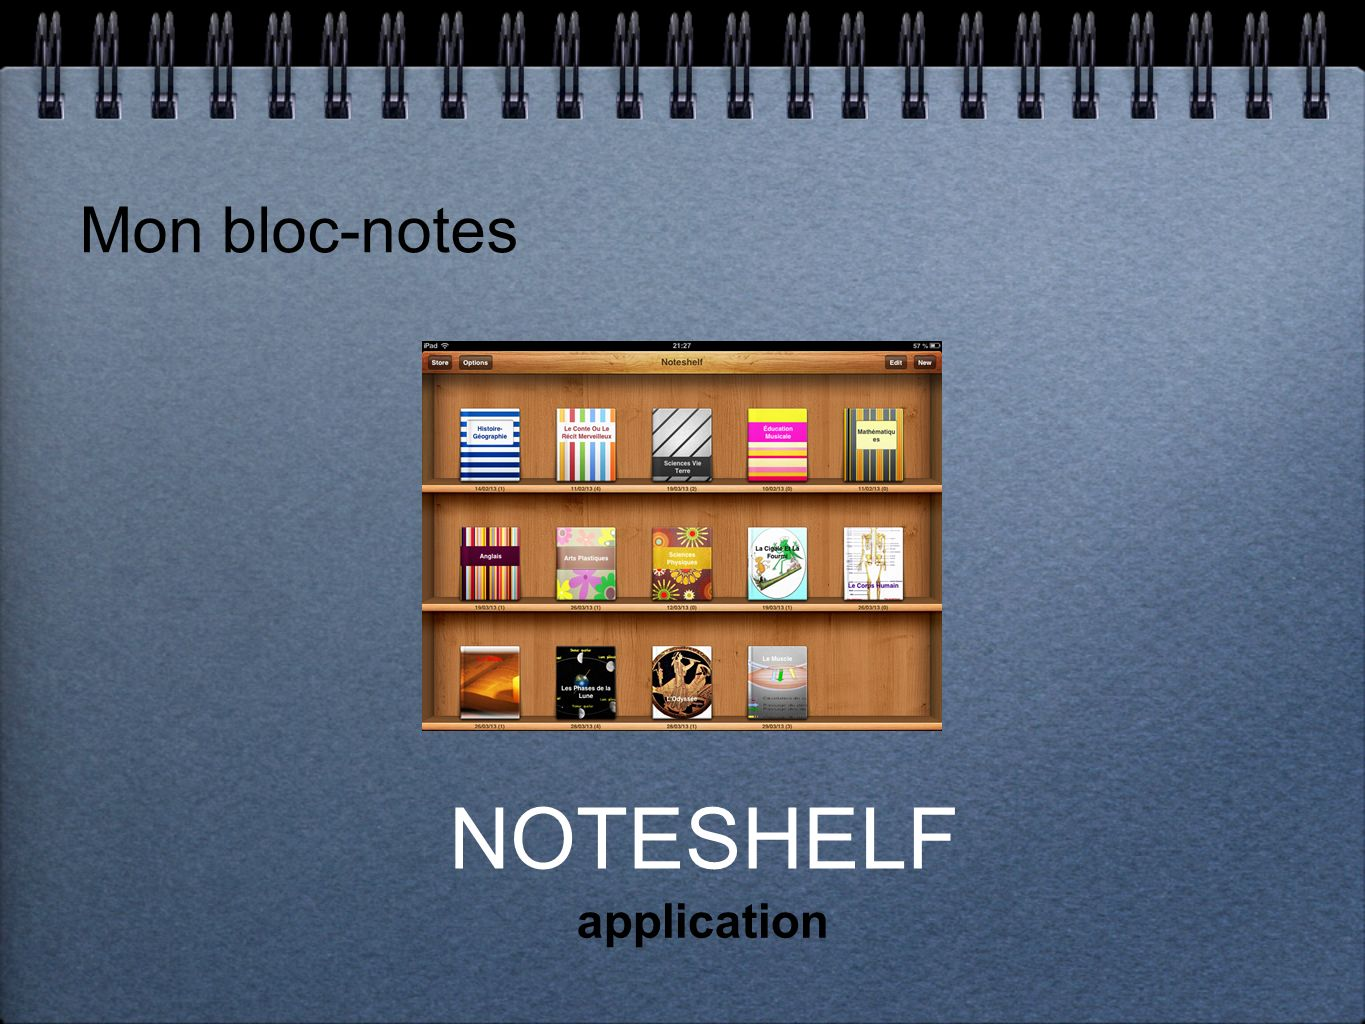 Mon bloc-notes NOTESHELF application